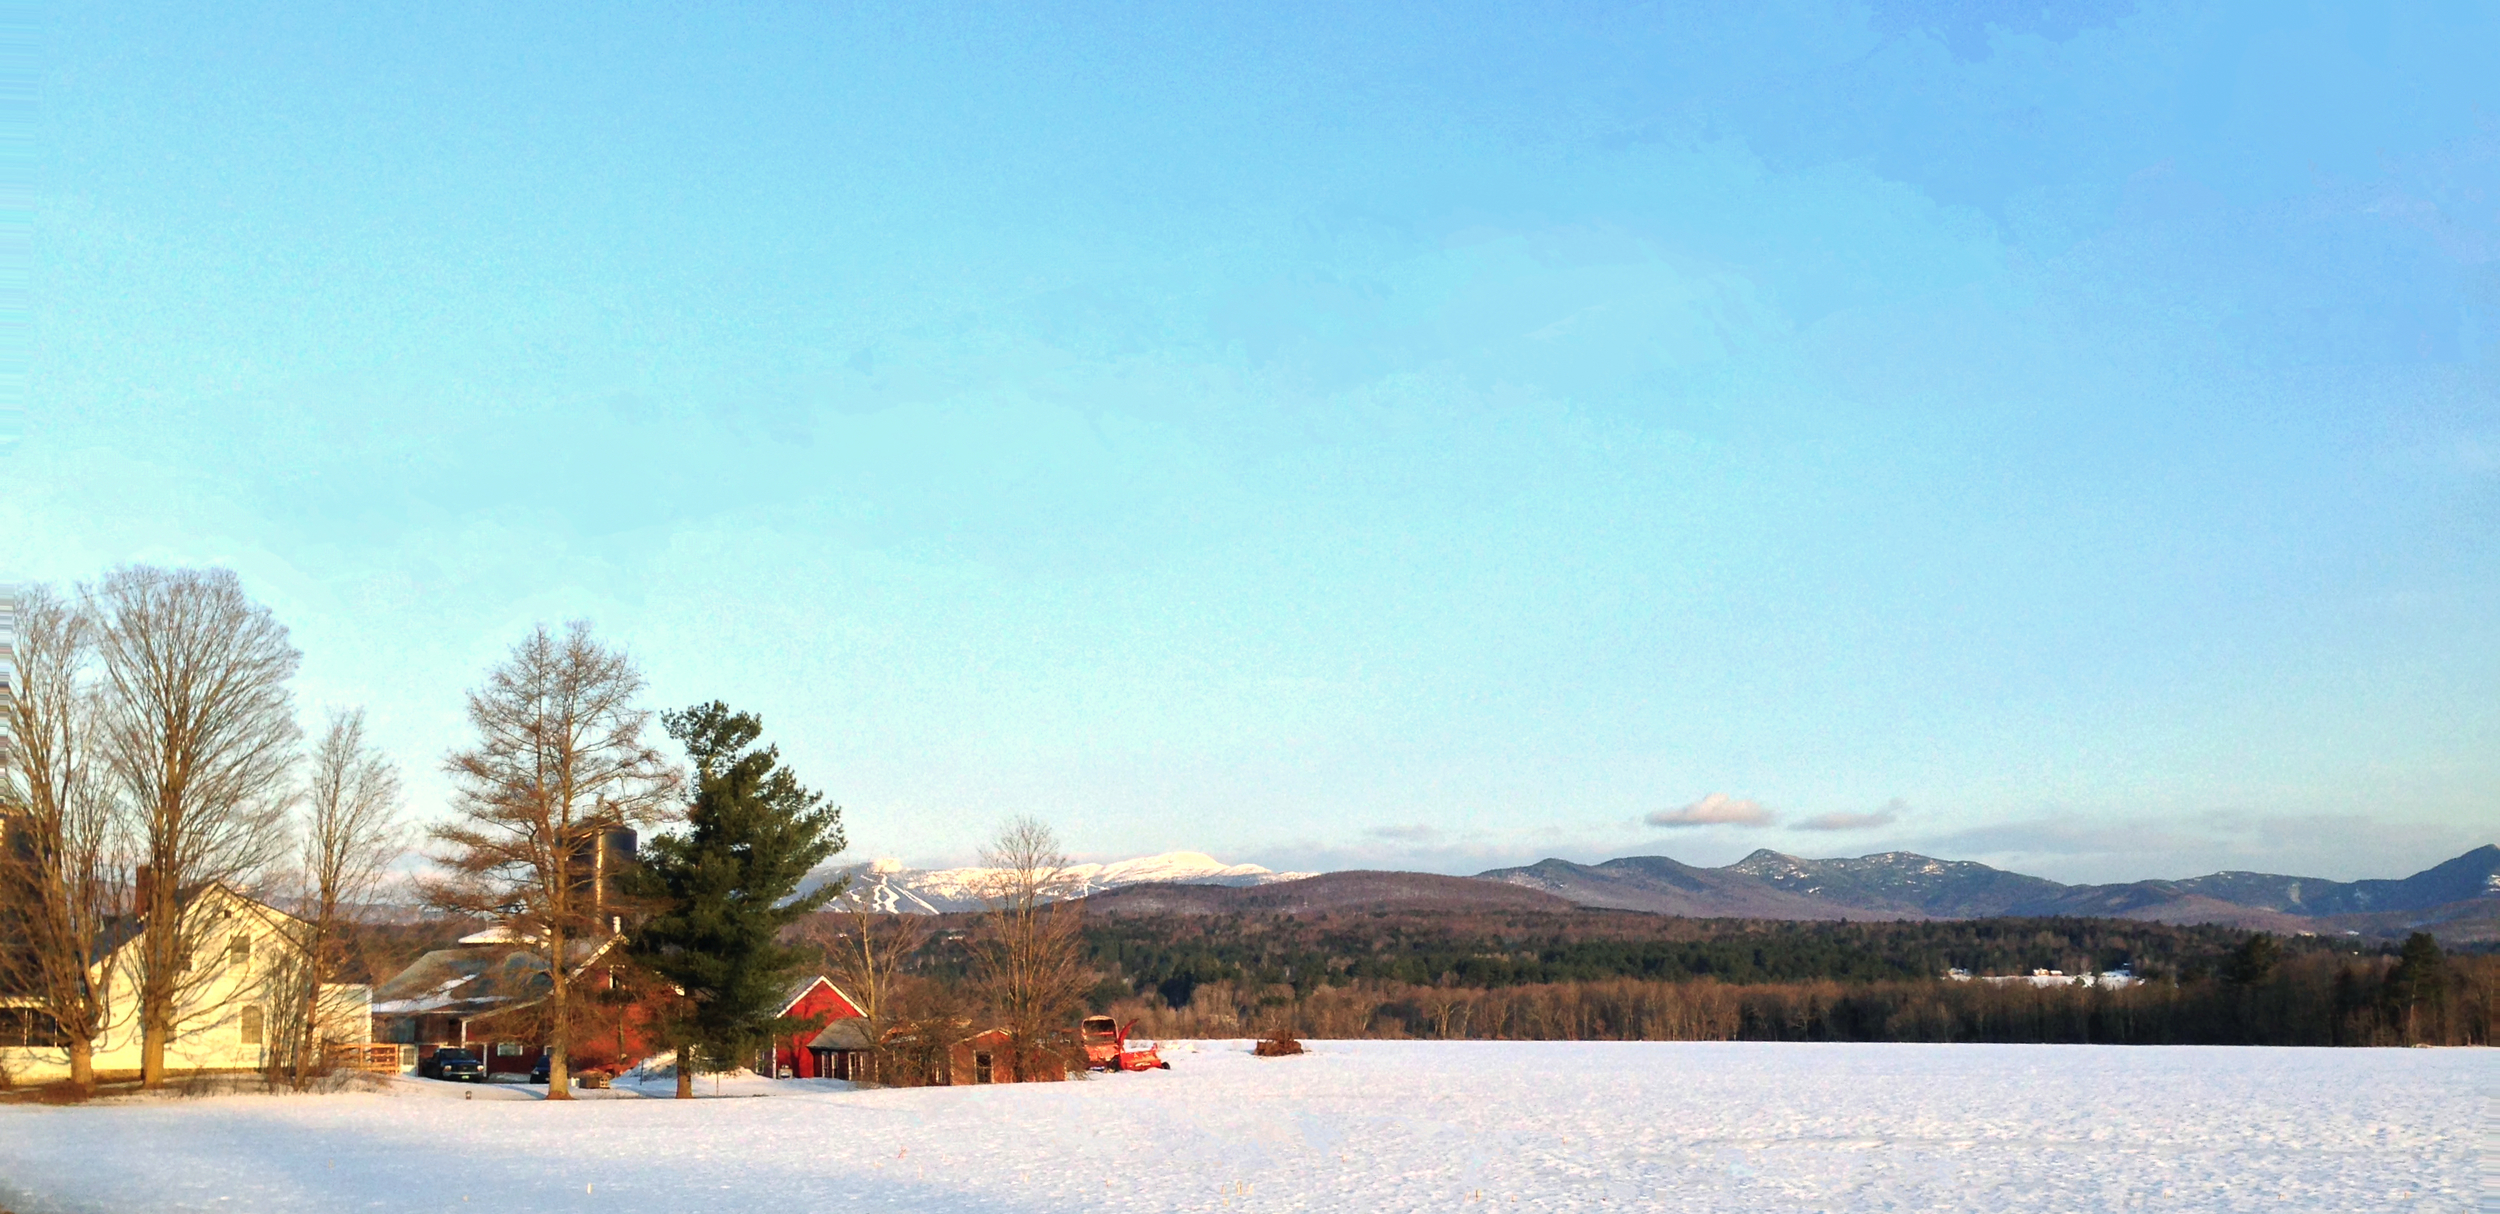 Mt. Mansfield and Stowe Mountain Resort from Route 100 north of Stowe Village